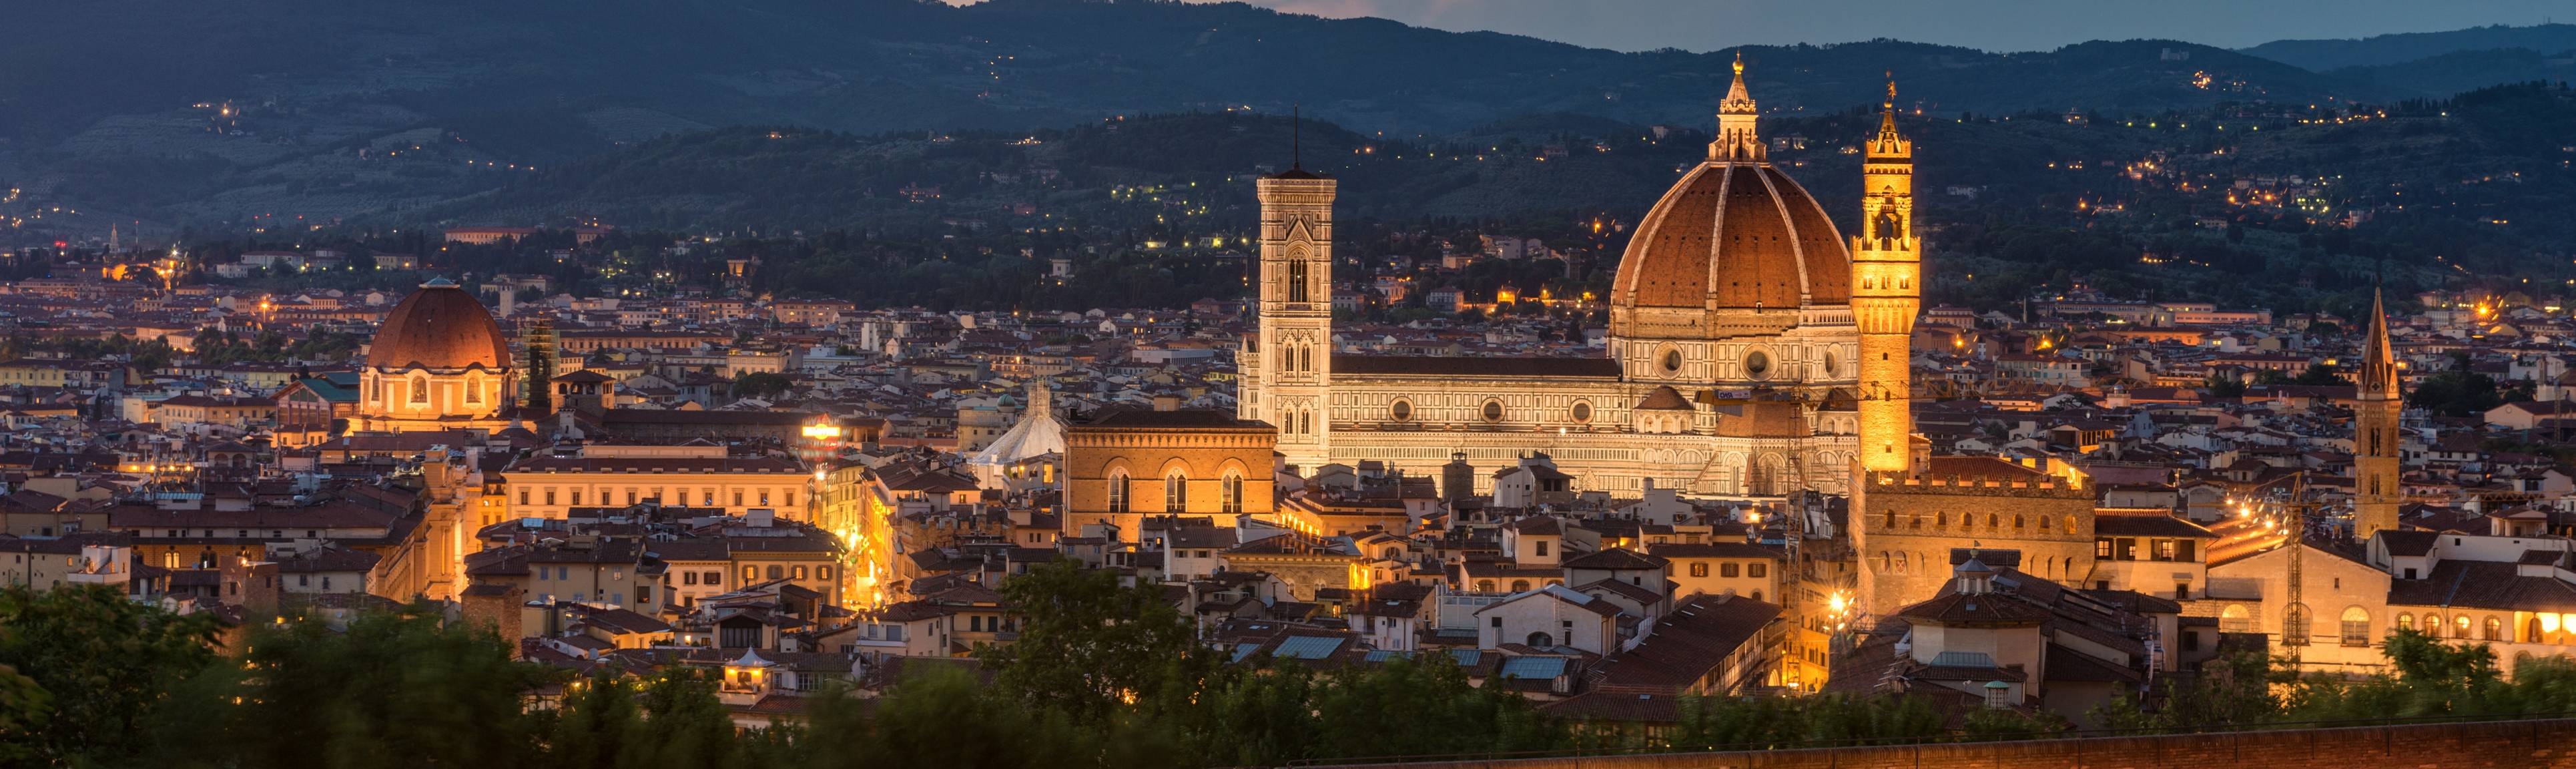 The city of Florence illuminated at night